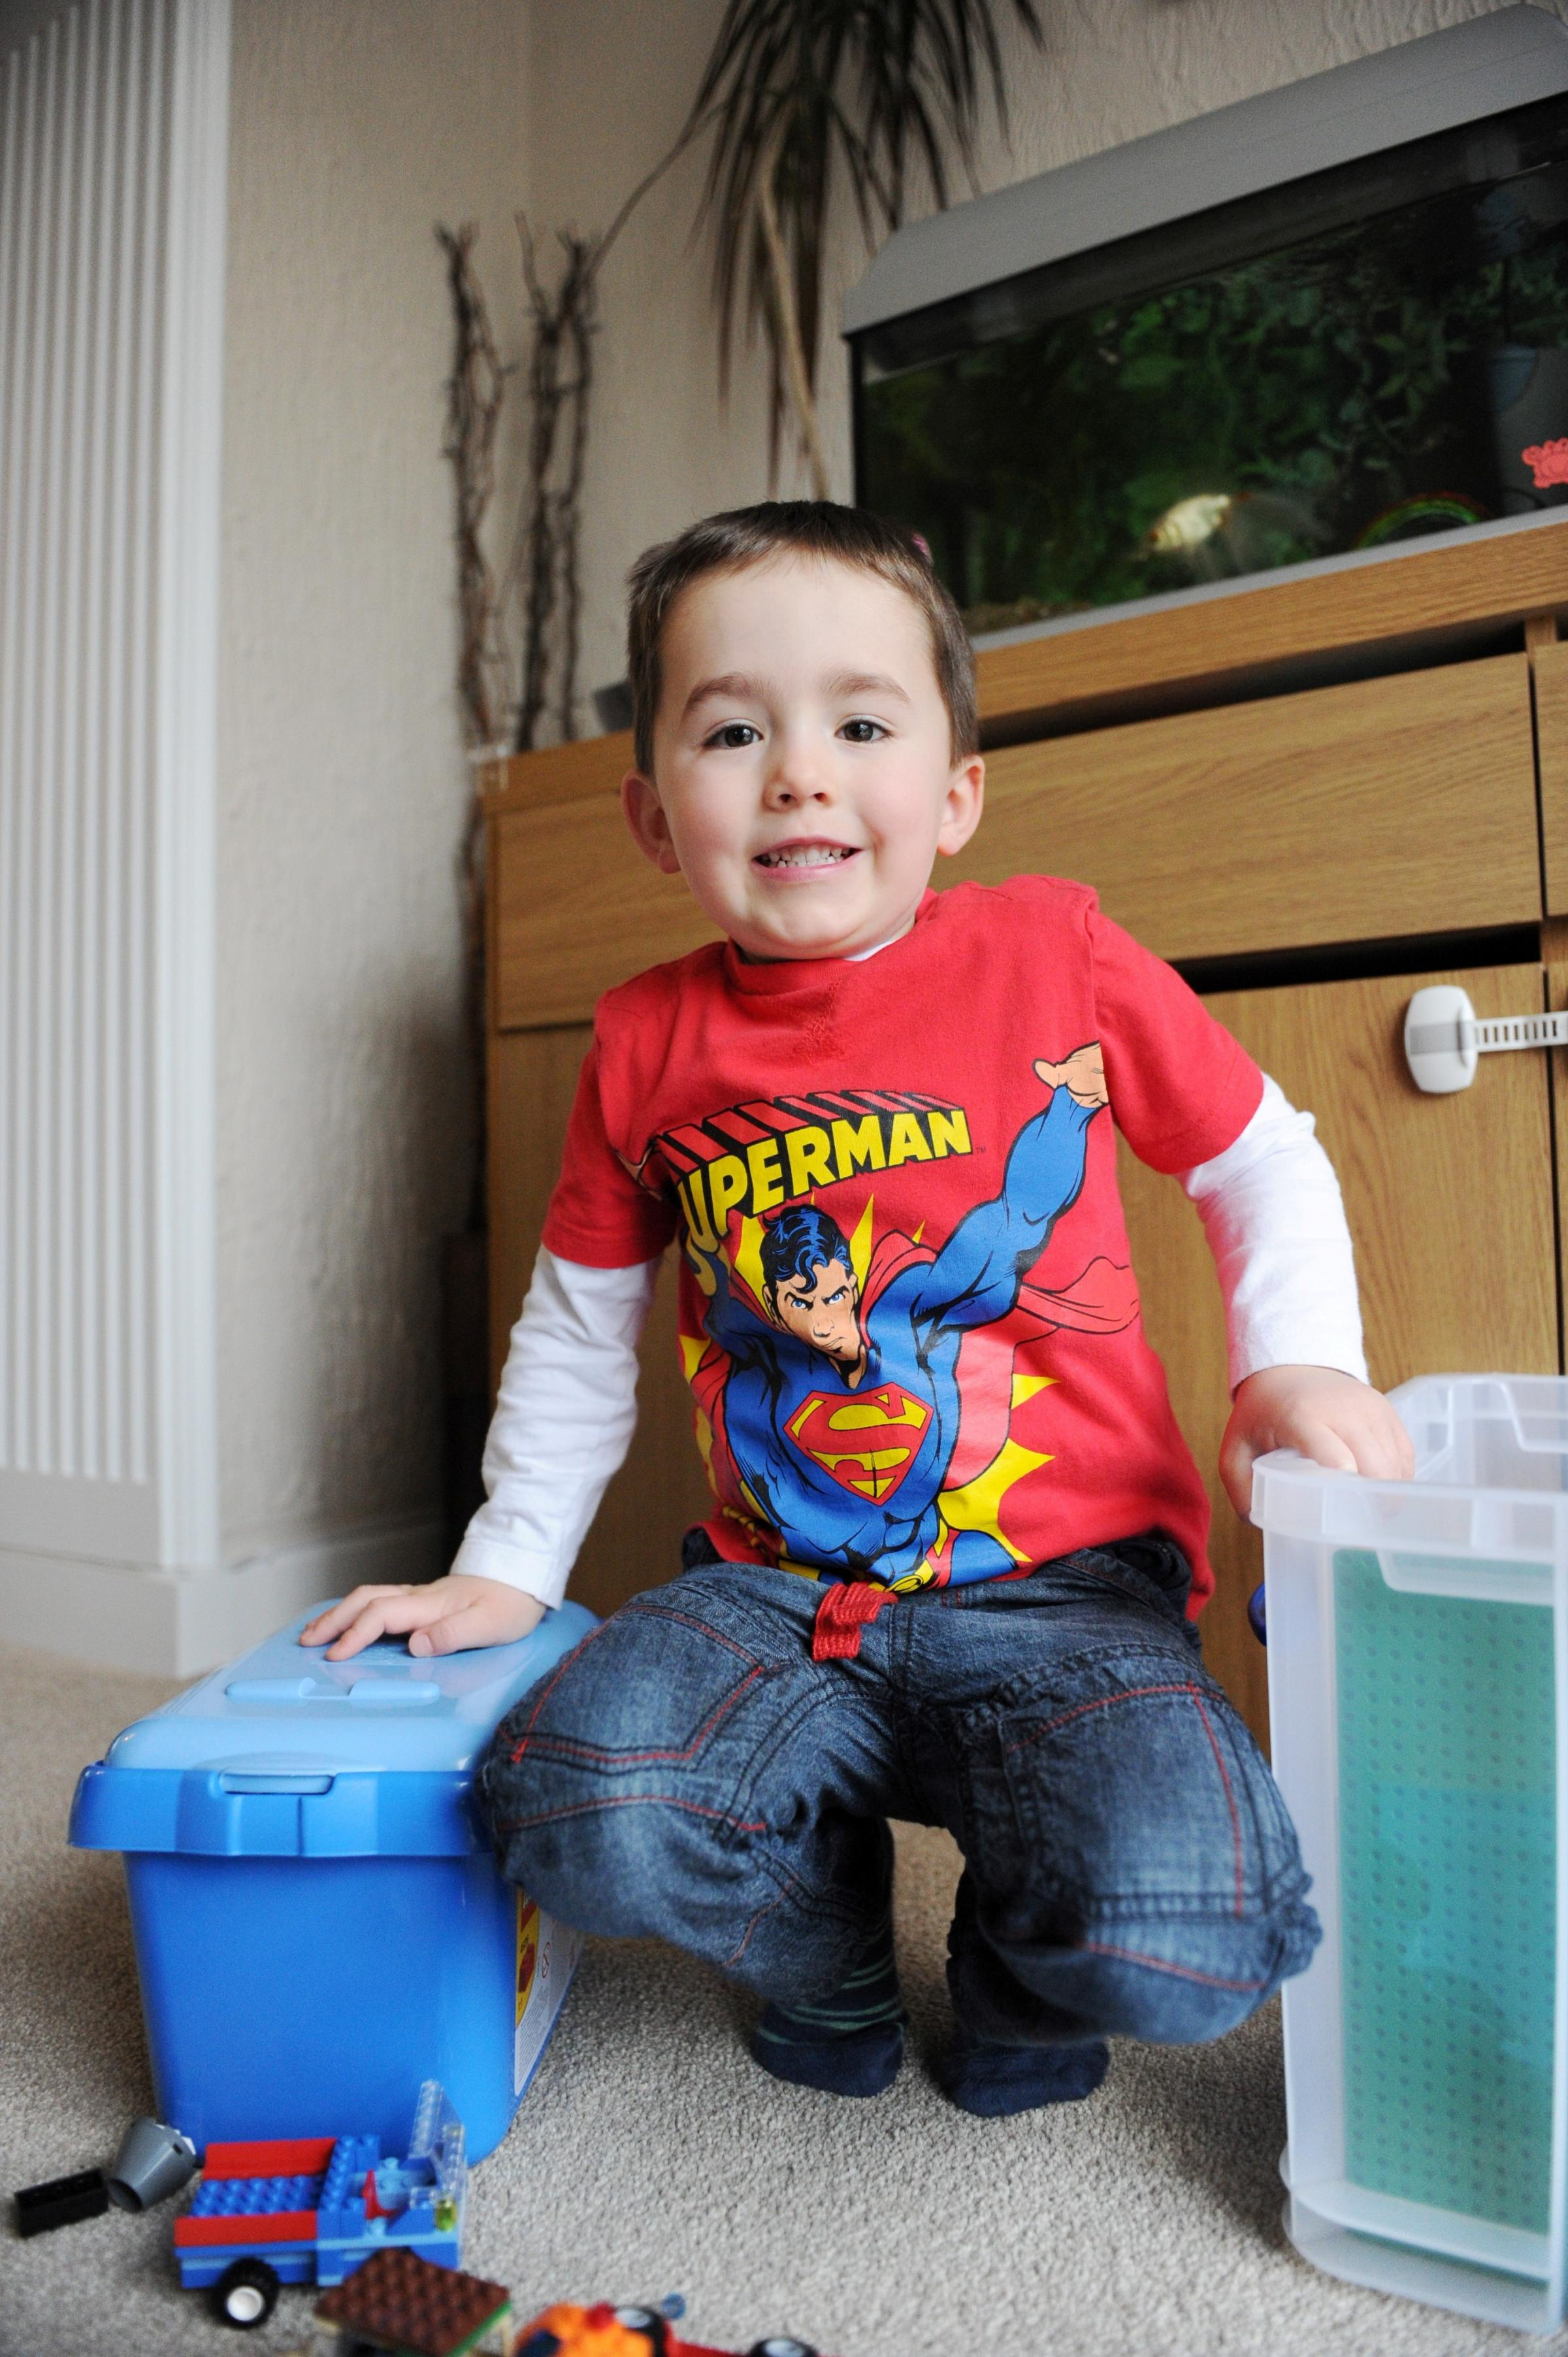 Battling Newport boy, 3, makes full recovery after heart surgery